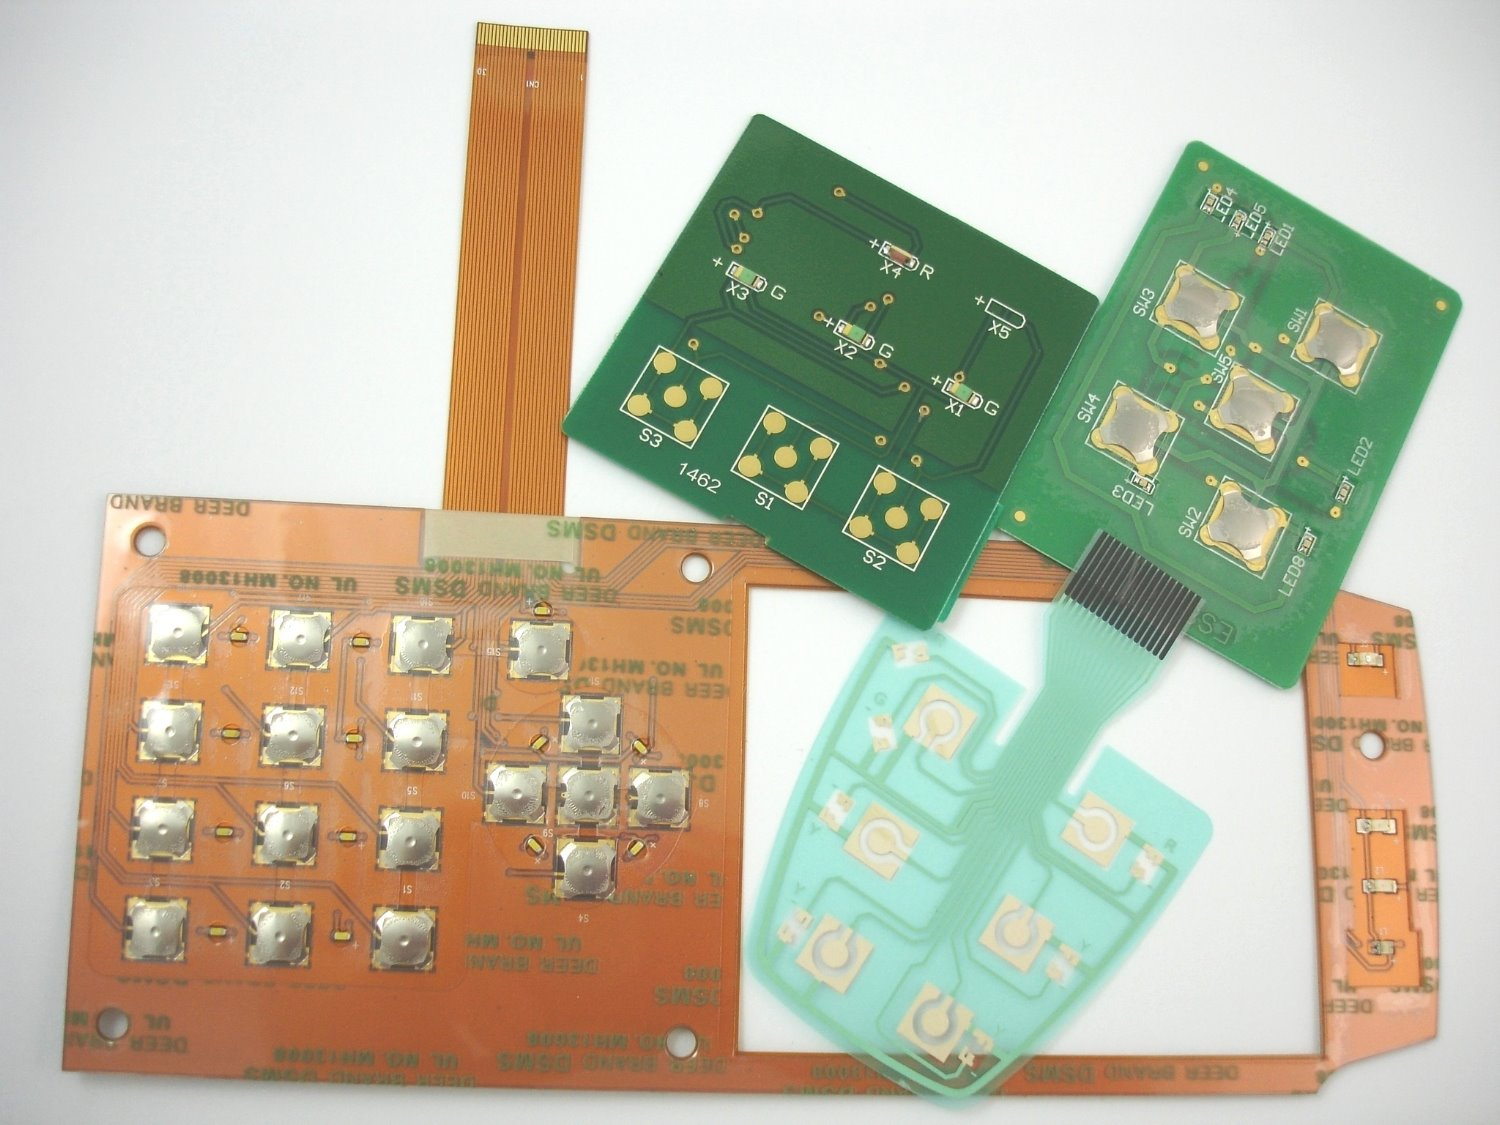 Flexible Circuit Manufacturers from Taiwan of Kingley Tech